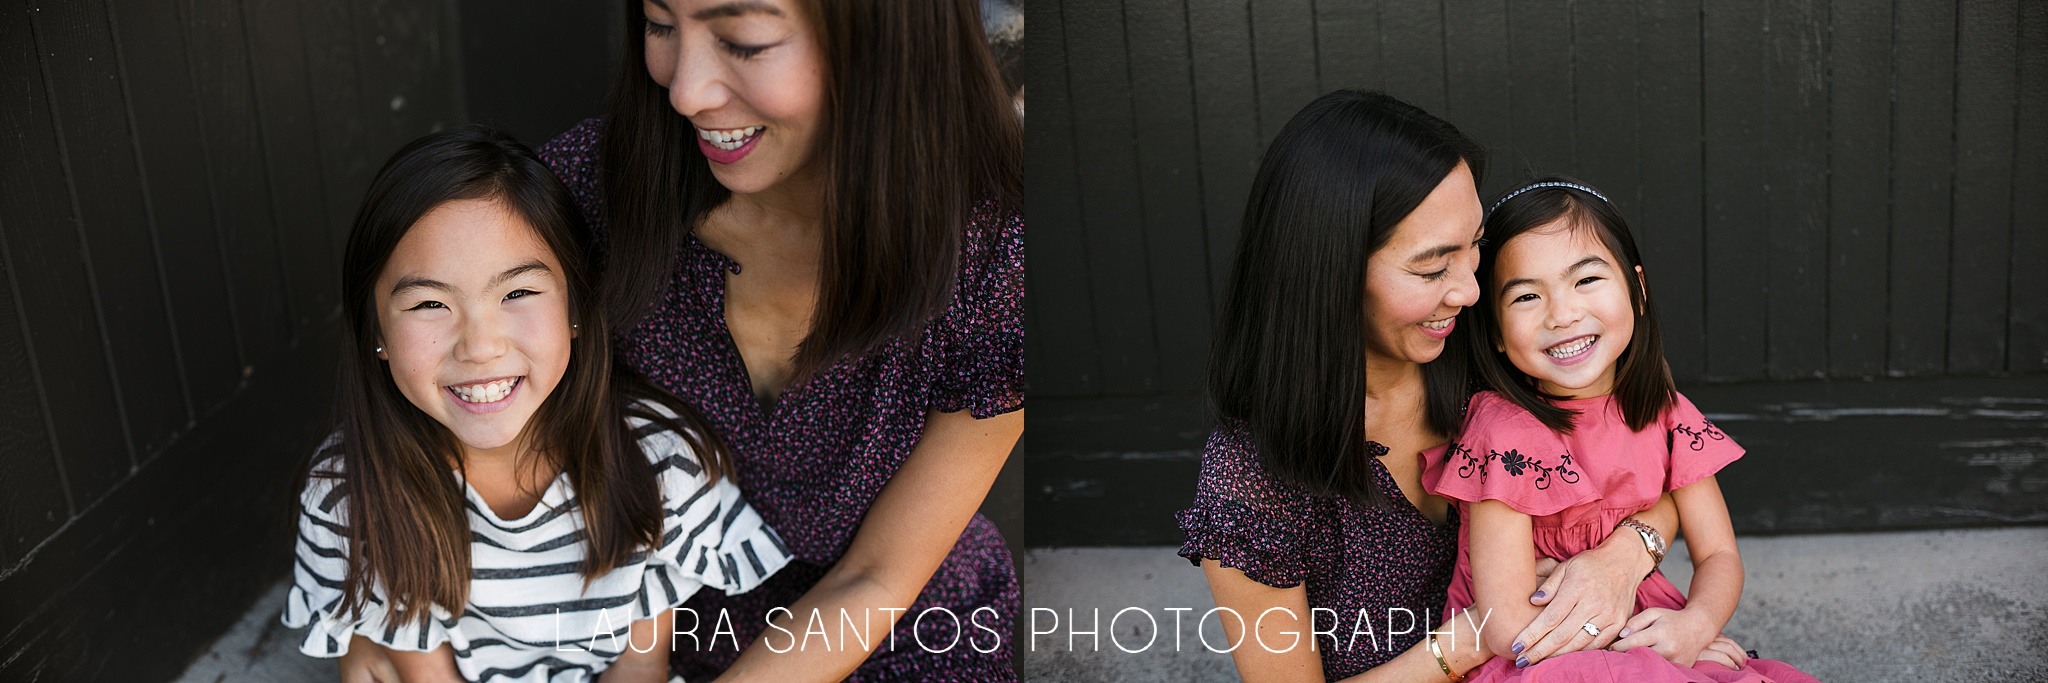 Laura Santos Photography Portland Oregon Family Photographer_0868.jpg